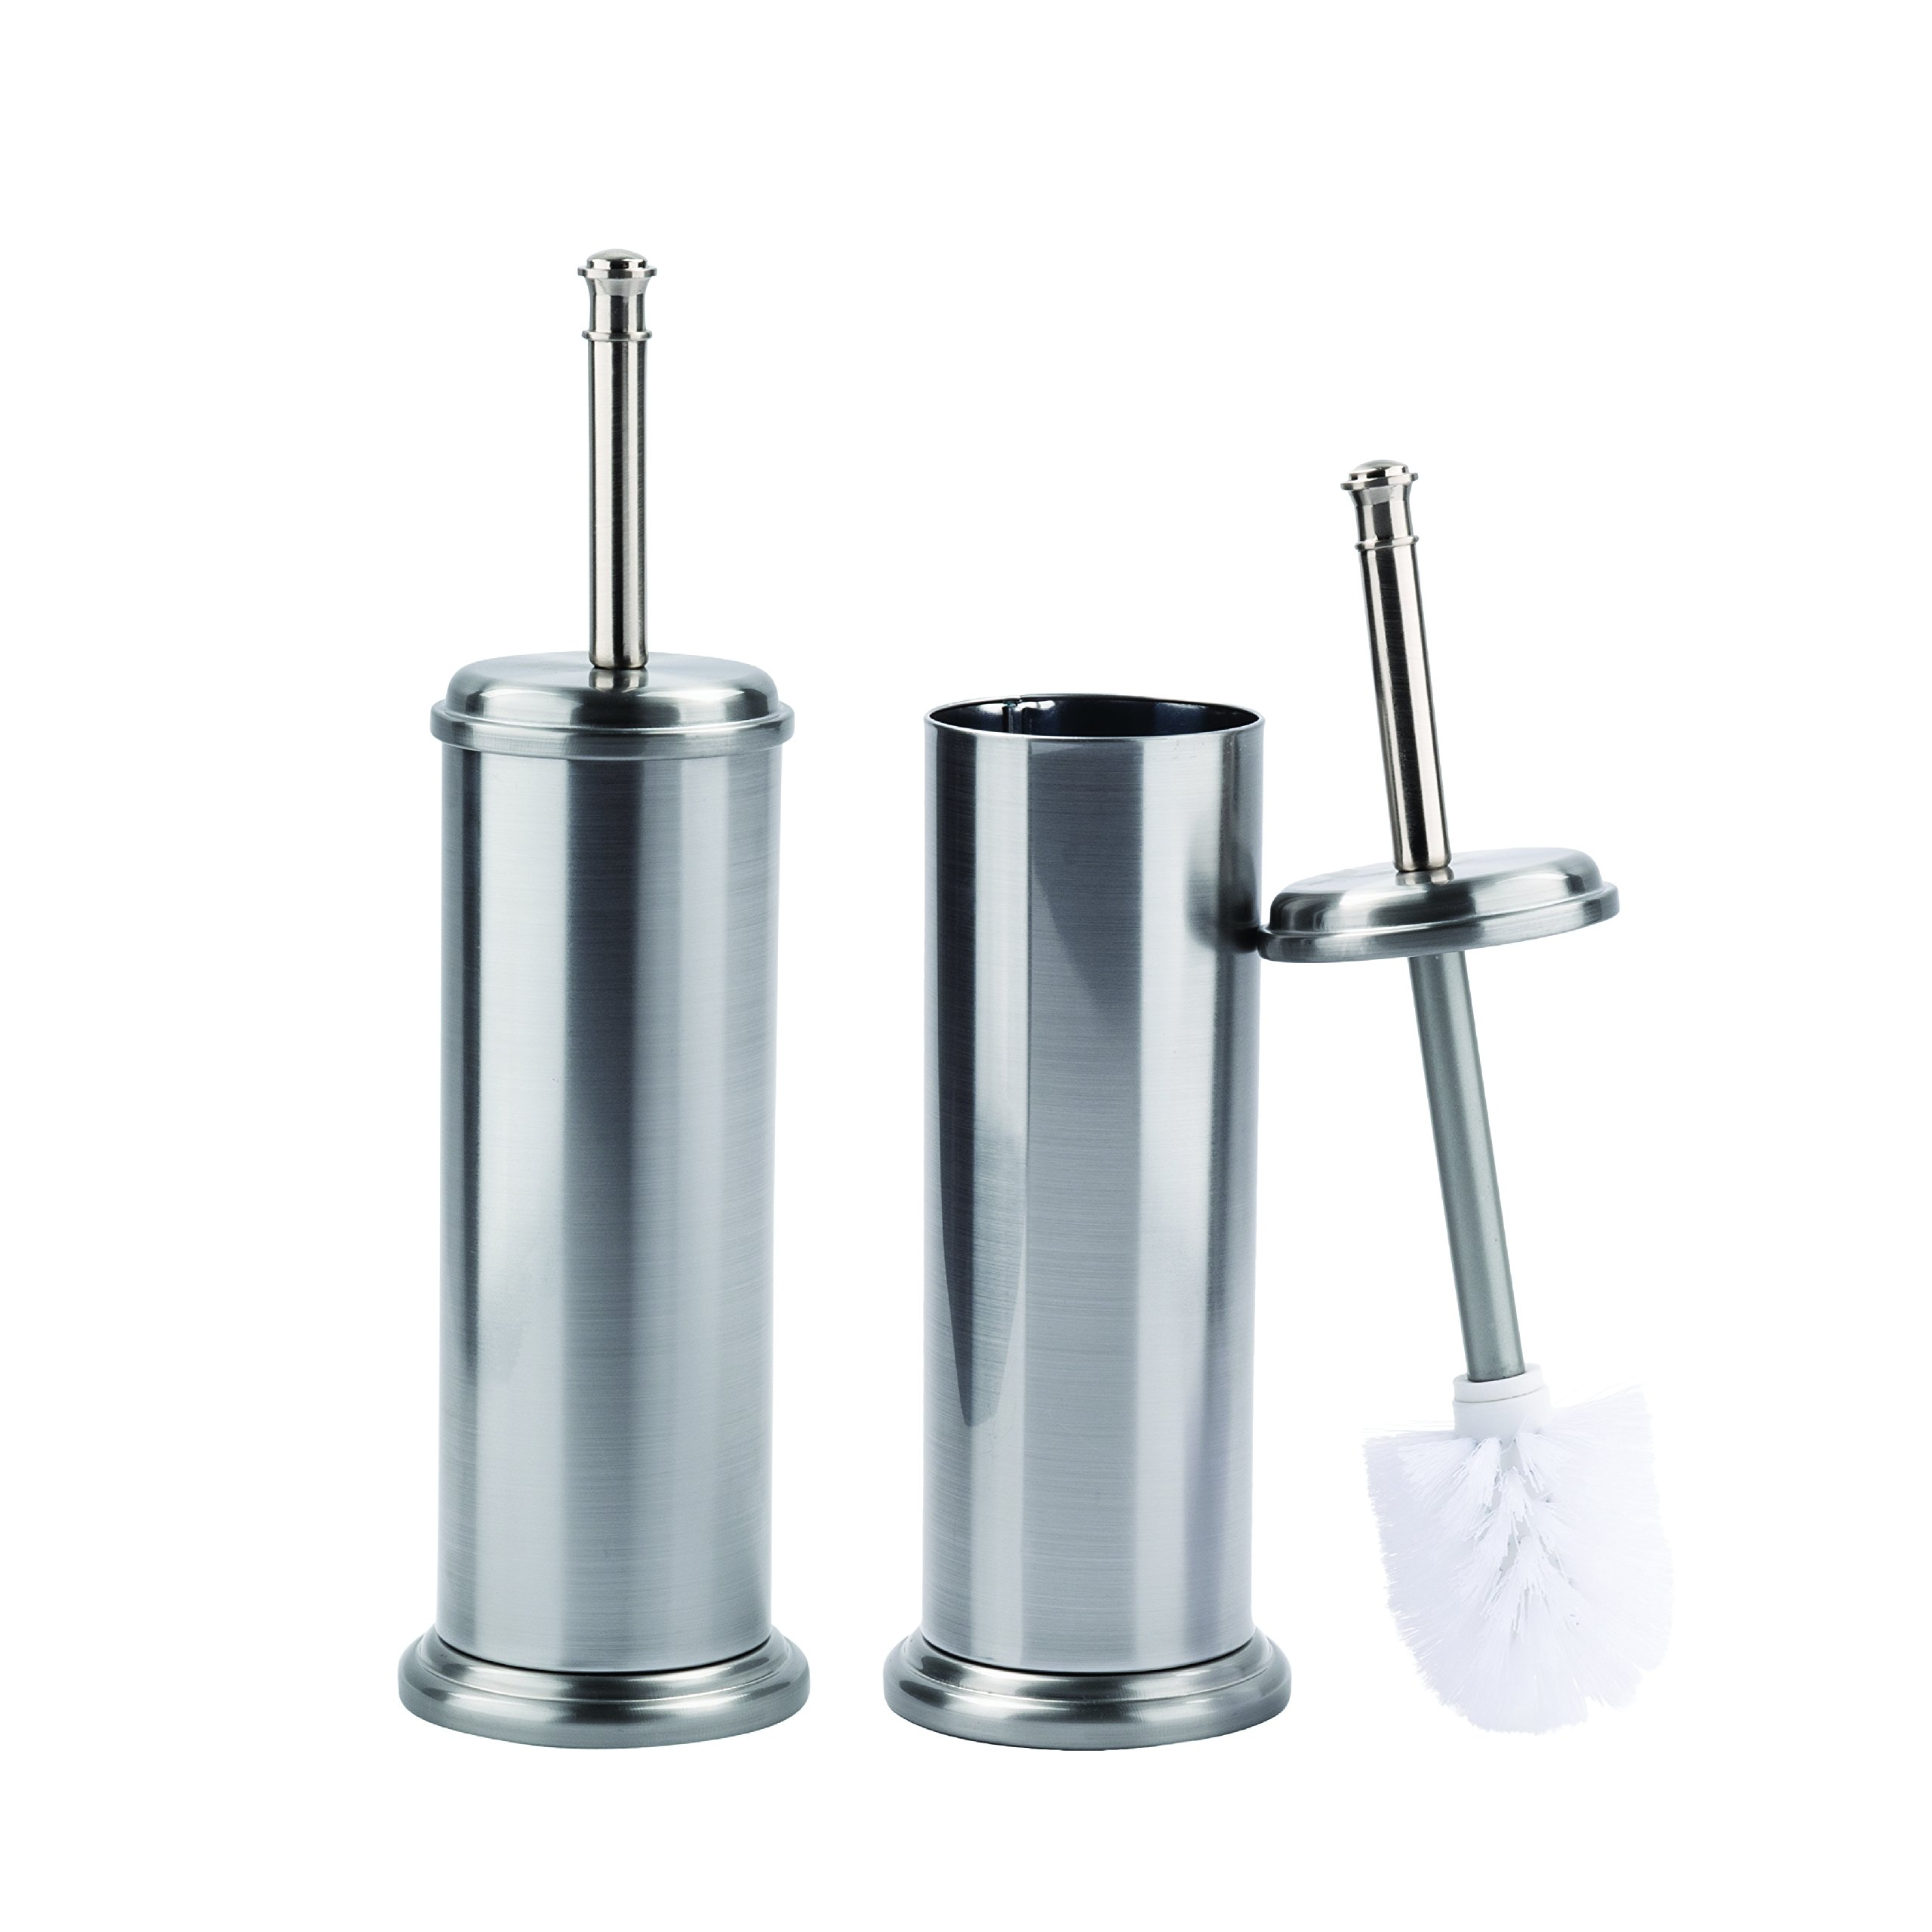 Toilet Brush and Canister Metal Stem Brushed Nickel Finish 2 Pack by LDR Industries